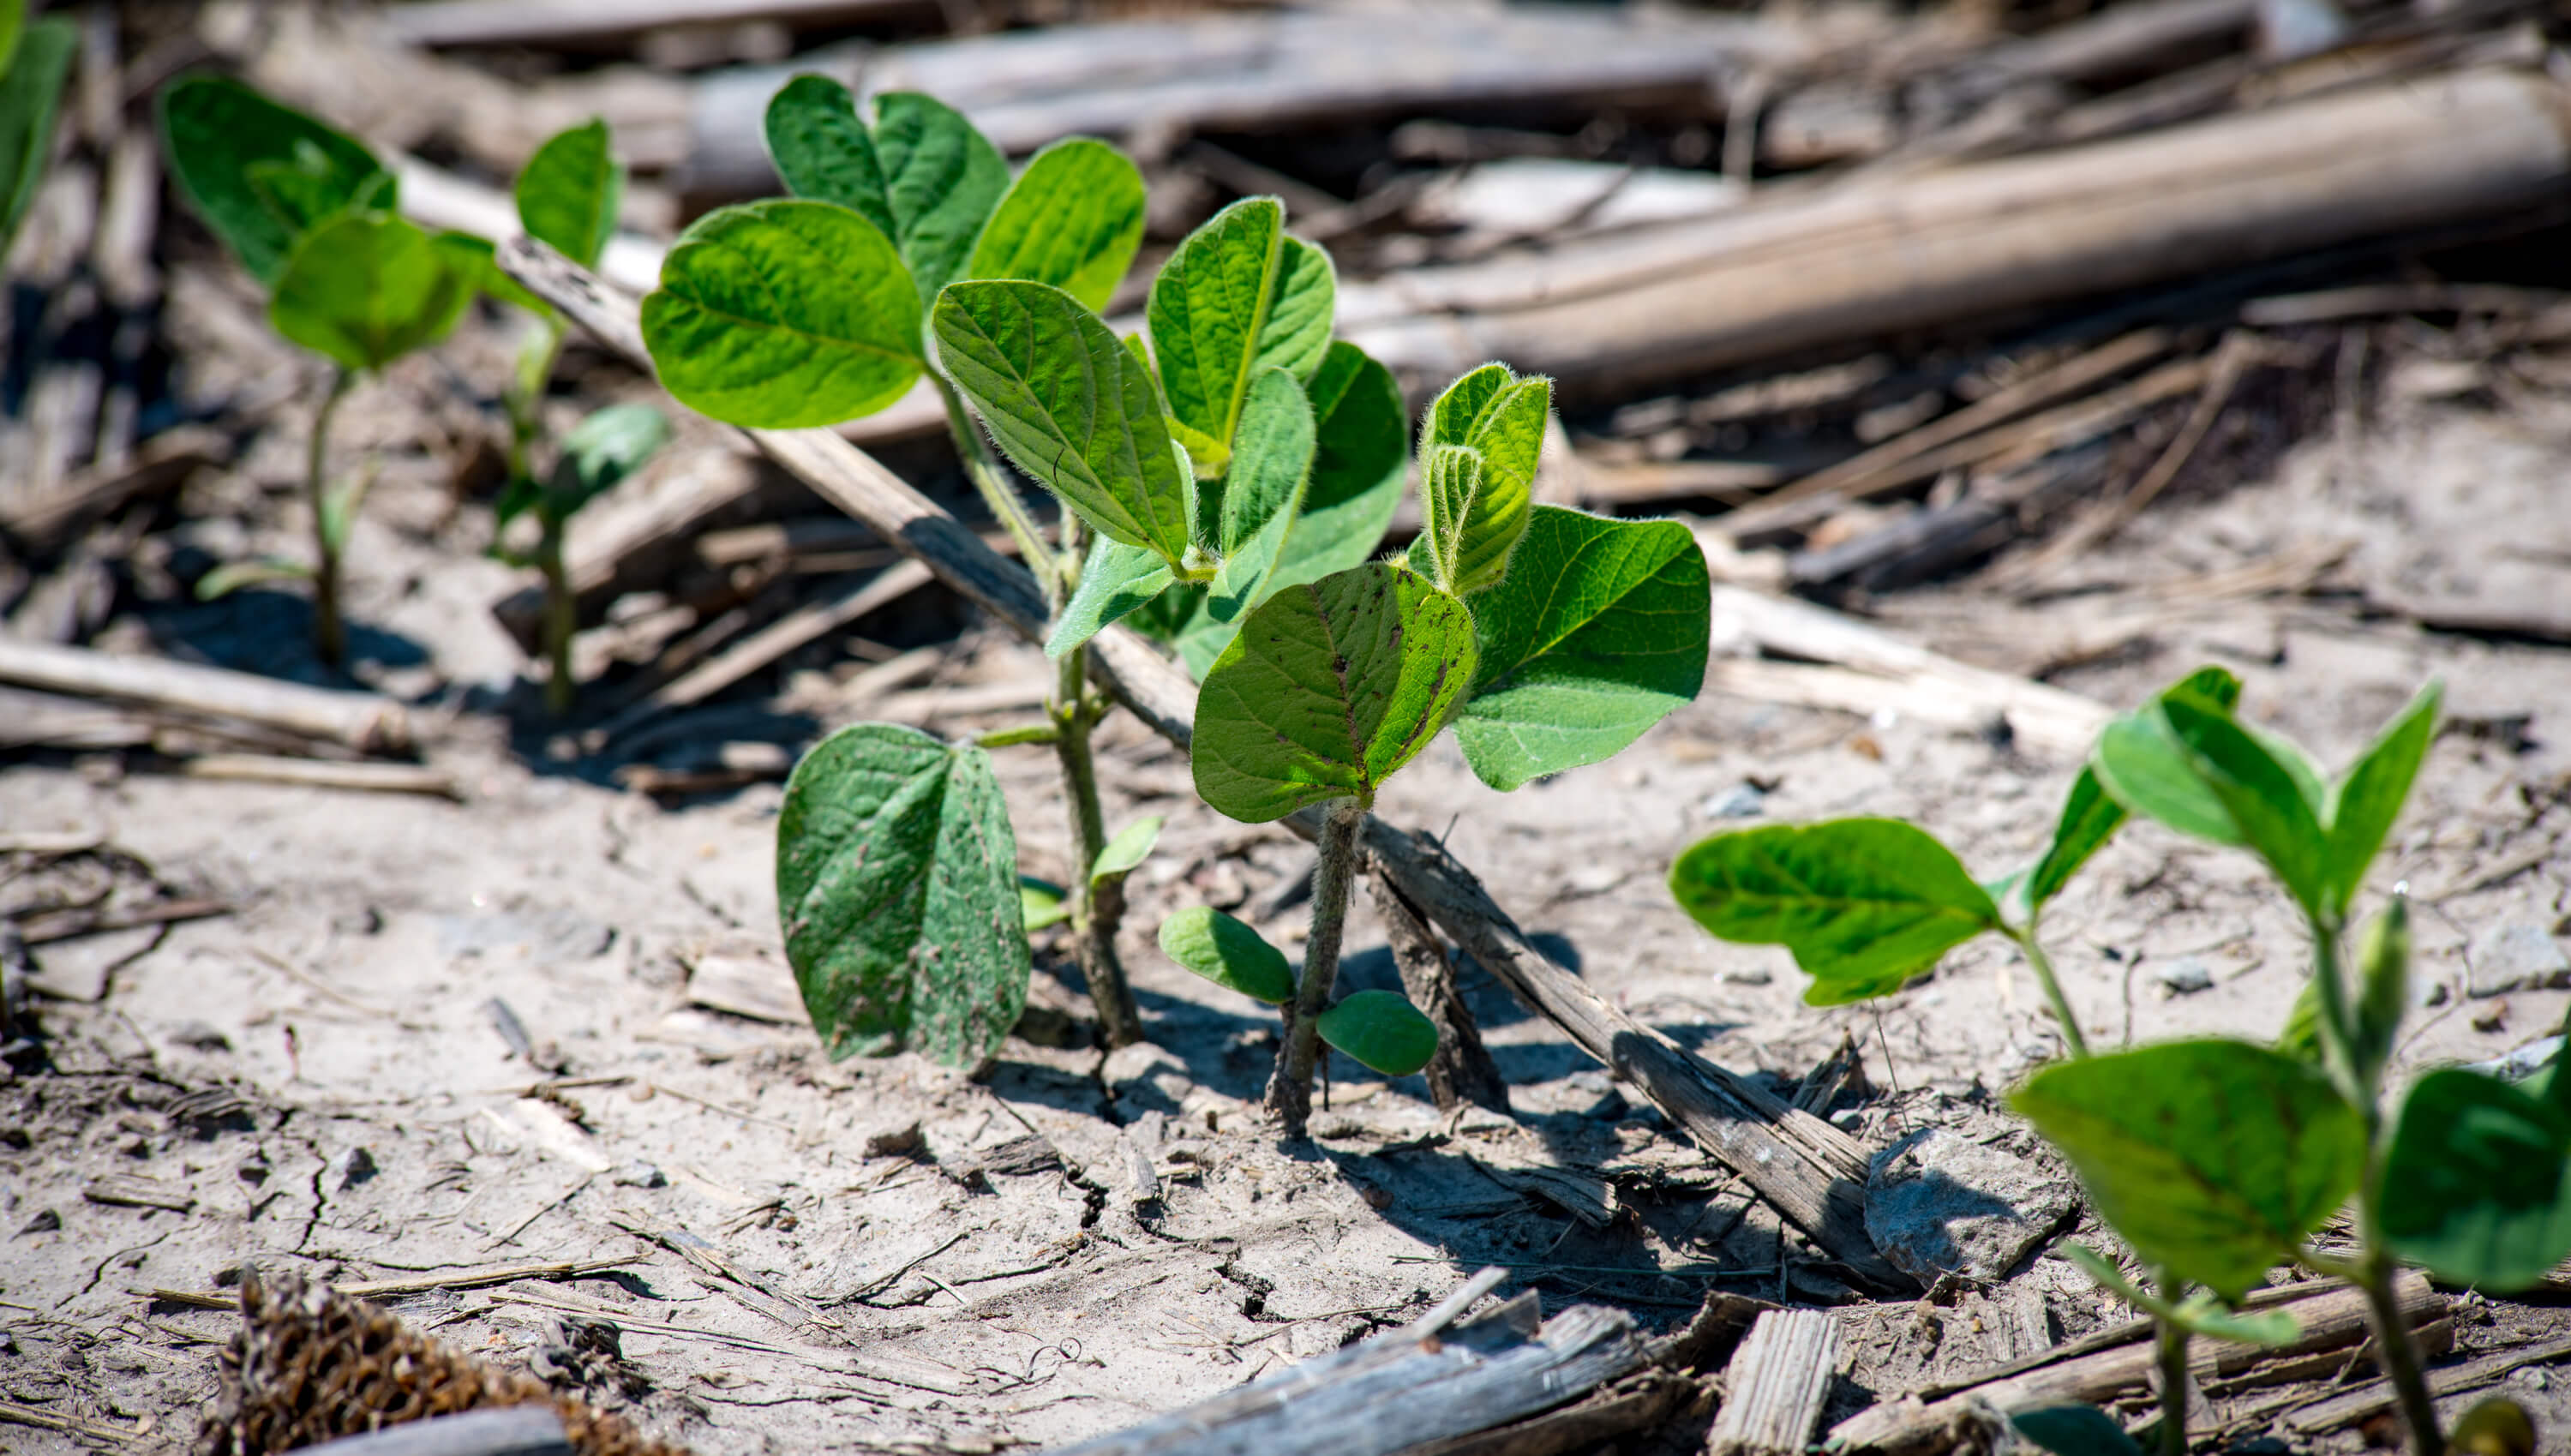 Newly emerging soybean plants with corn stalk on ground